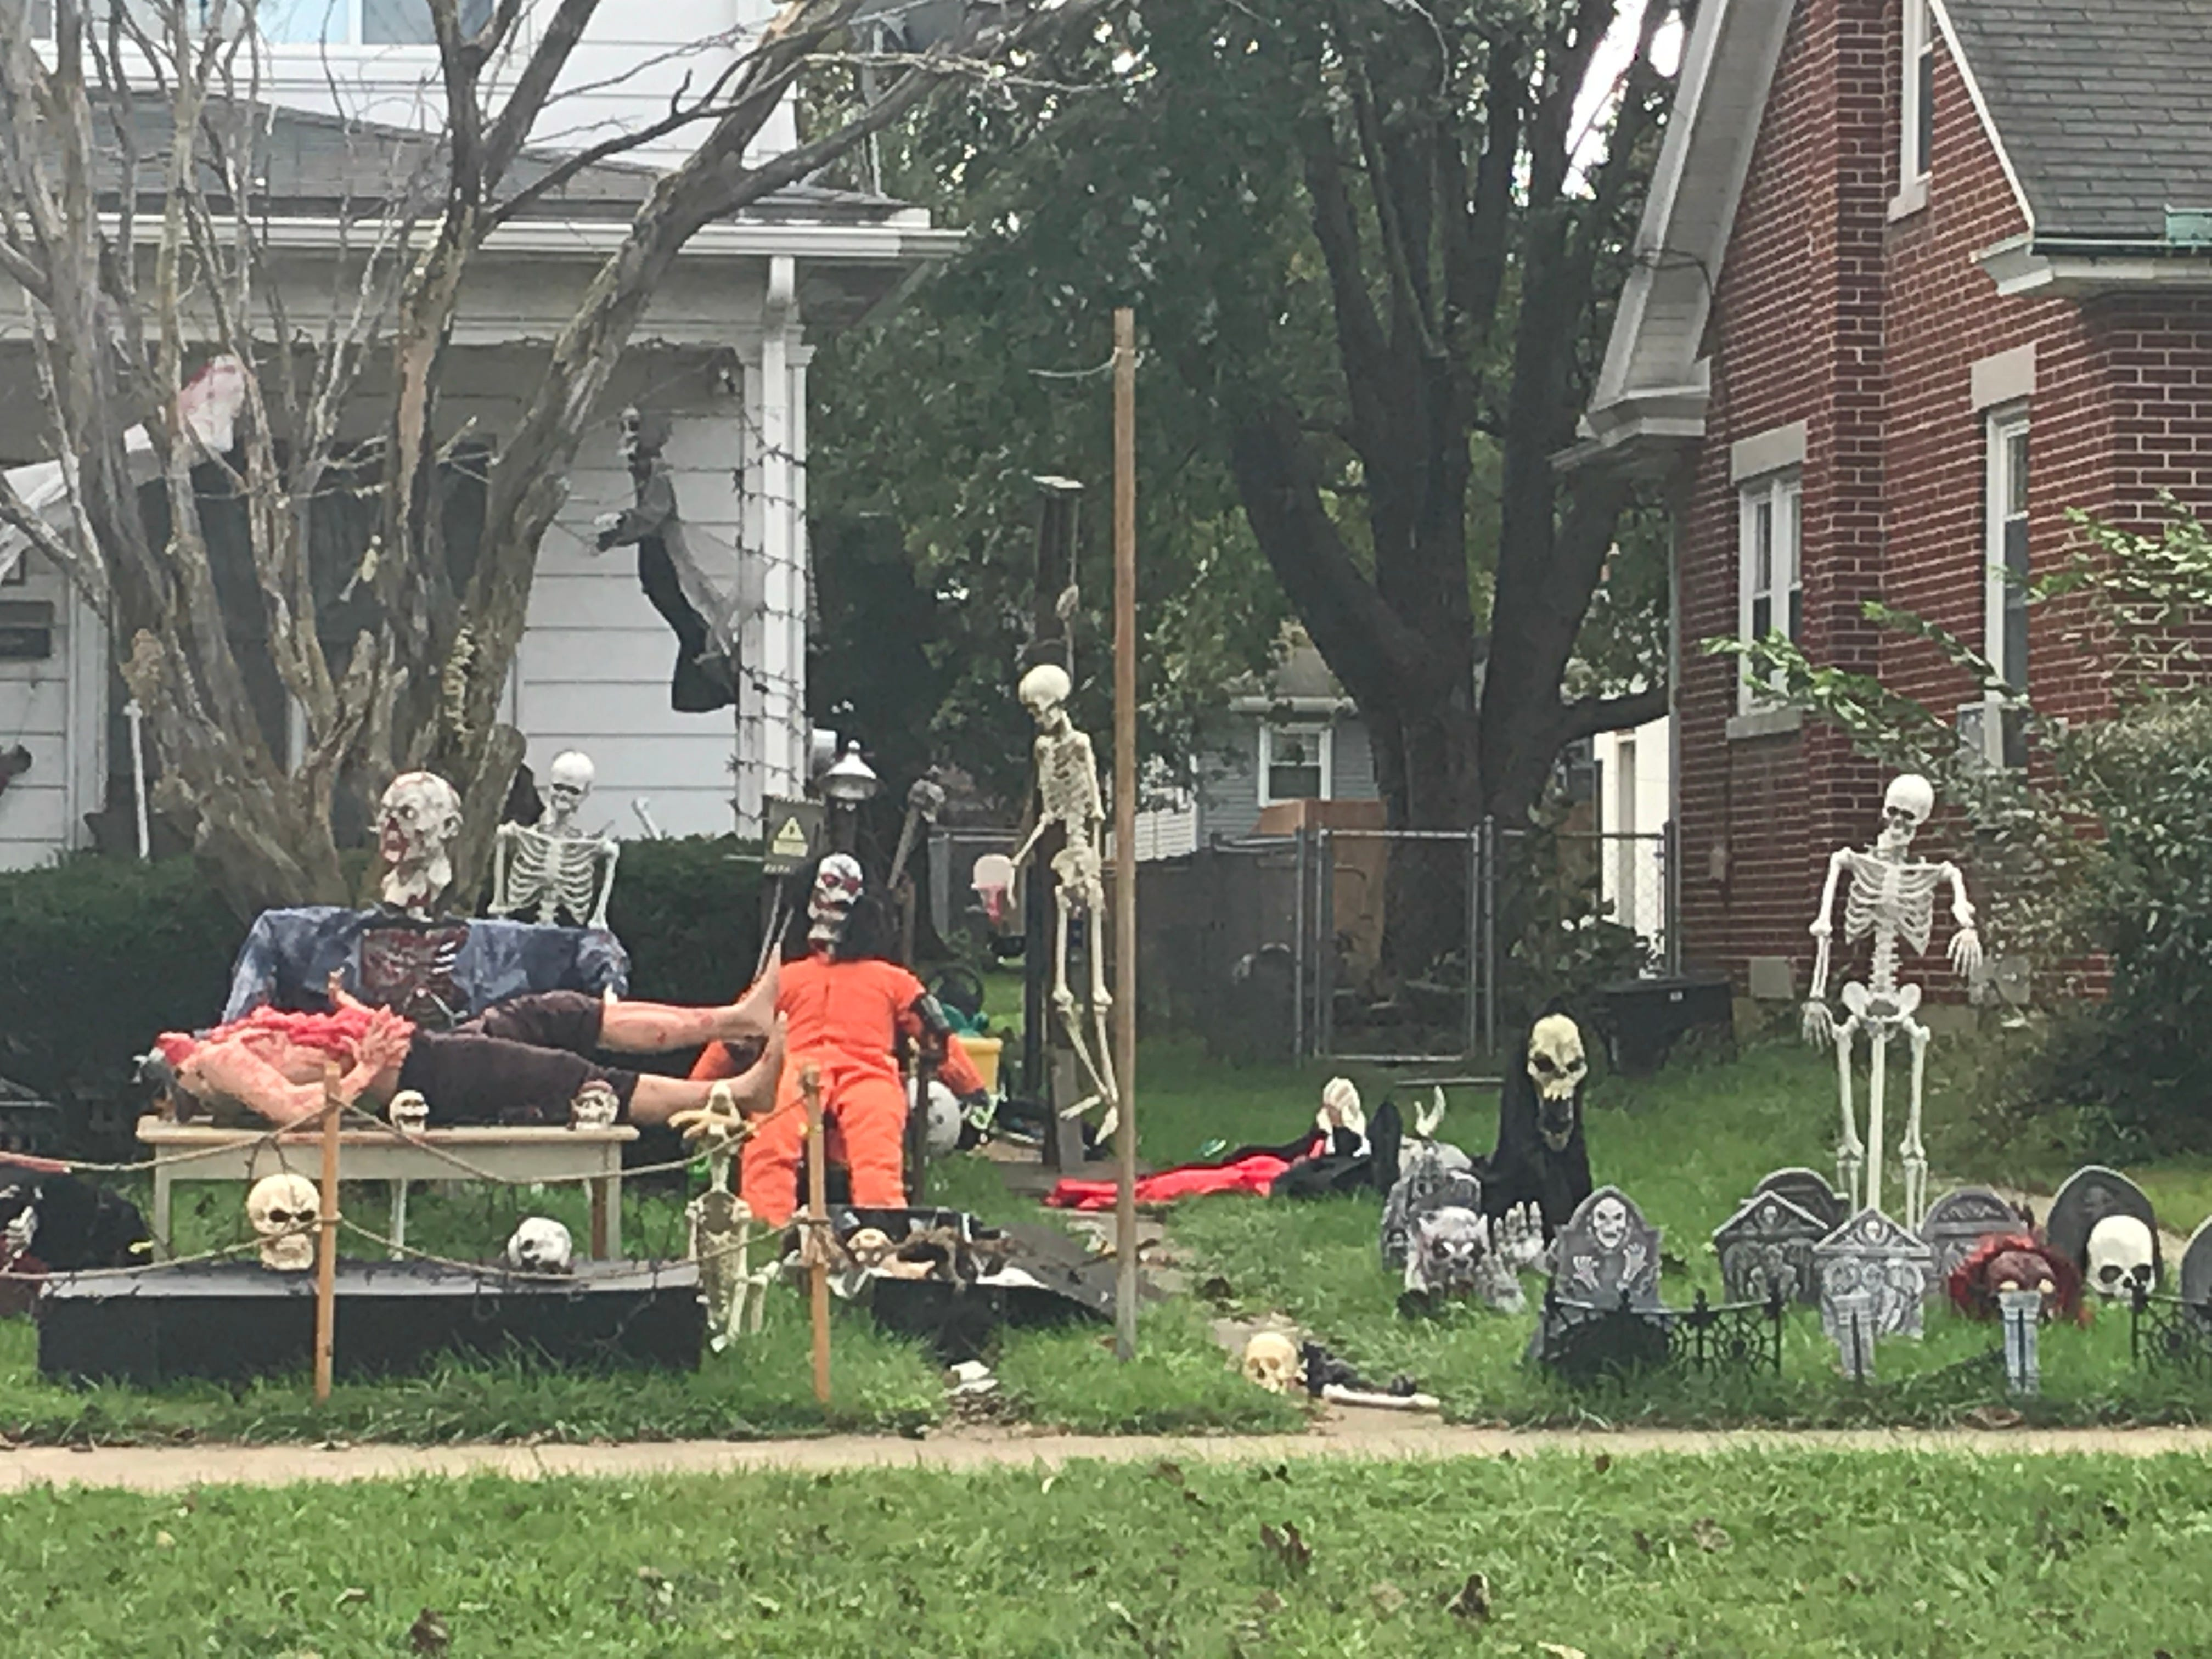 A home on Cherry Street in Palmyra is getting in the Halloween spirit